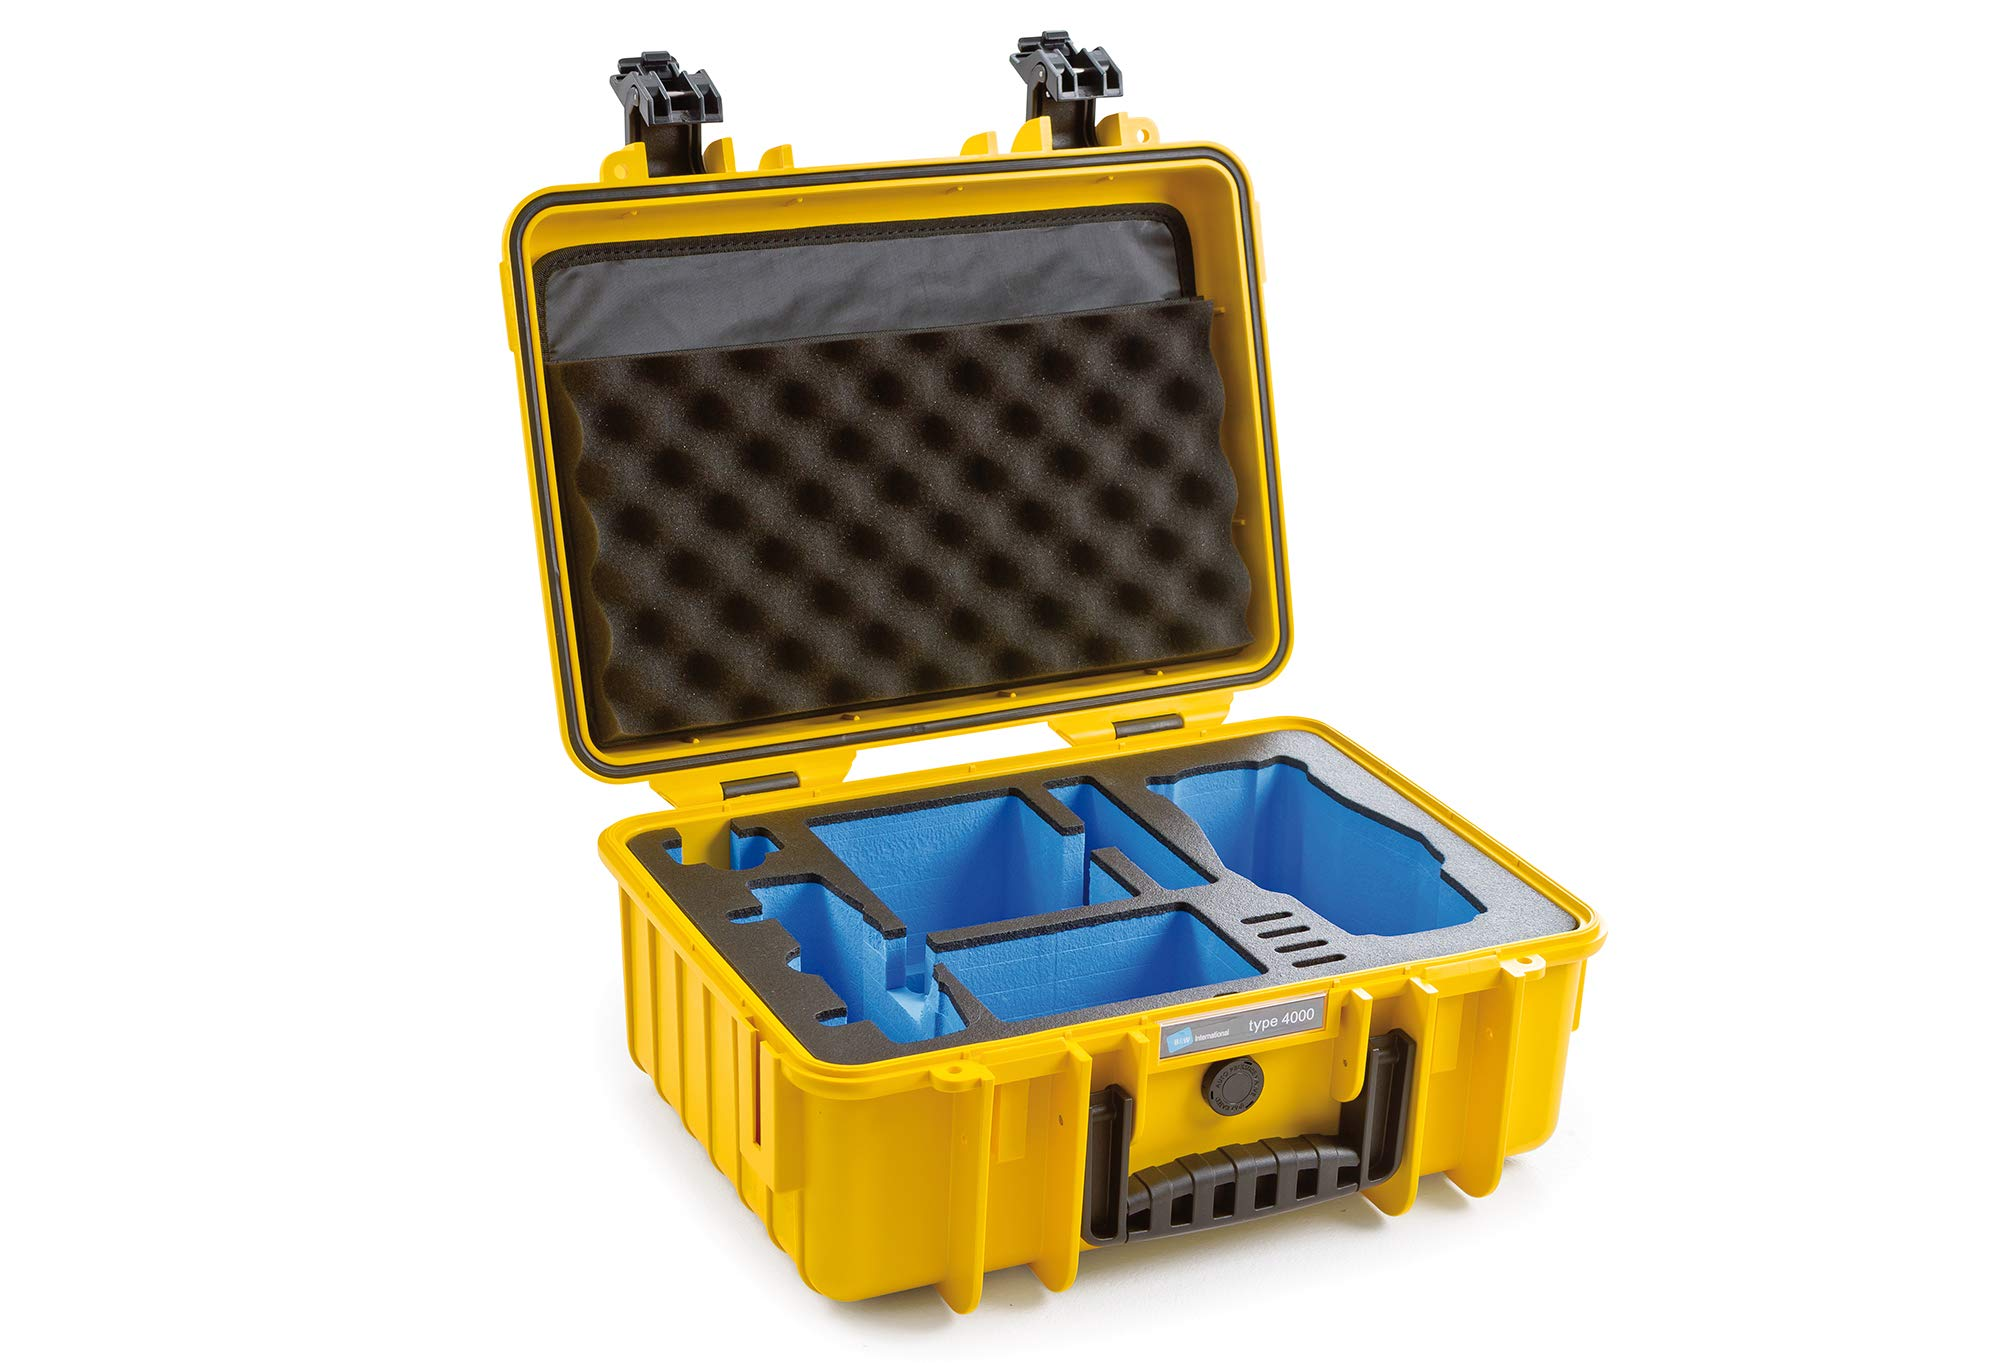 B&W Outdoor.Cases Type 4000 with DJI Mavic 2 Inlay Case for DJI Mavic 2 (Pro/Zoom), DJI Smart Controller, Fly More Kit and ND Filter - The Original by B&W International GmbH